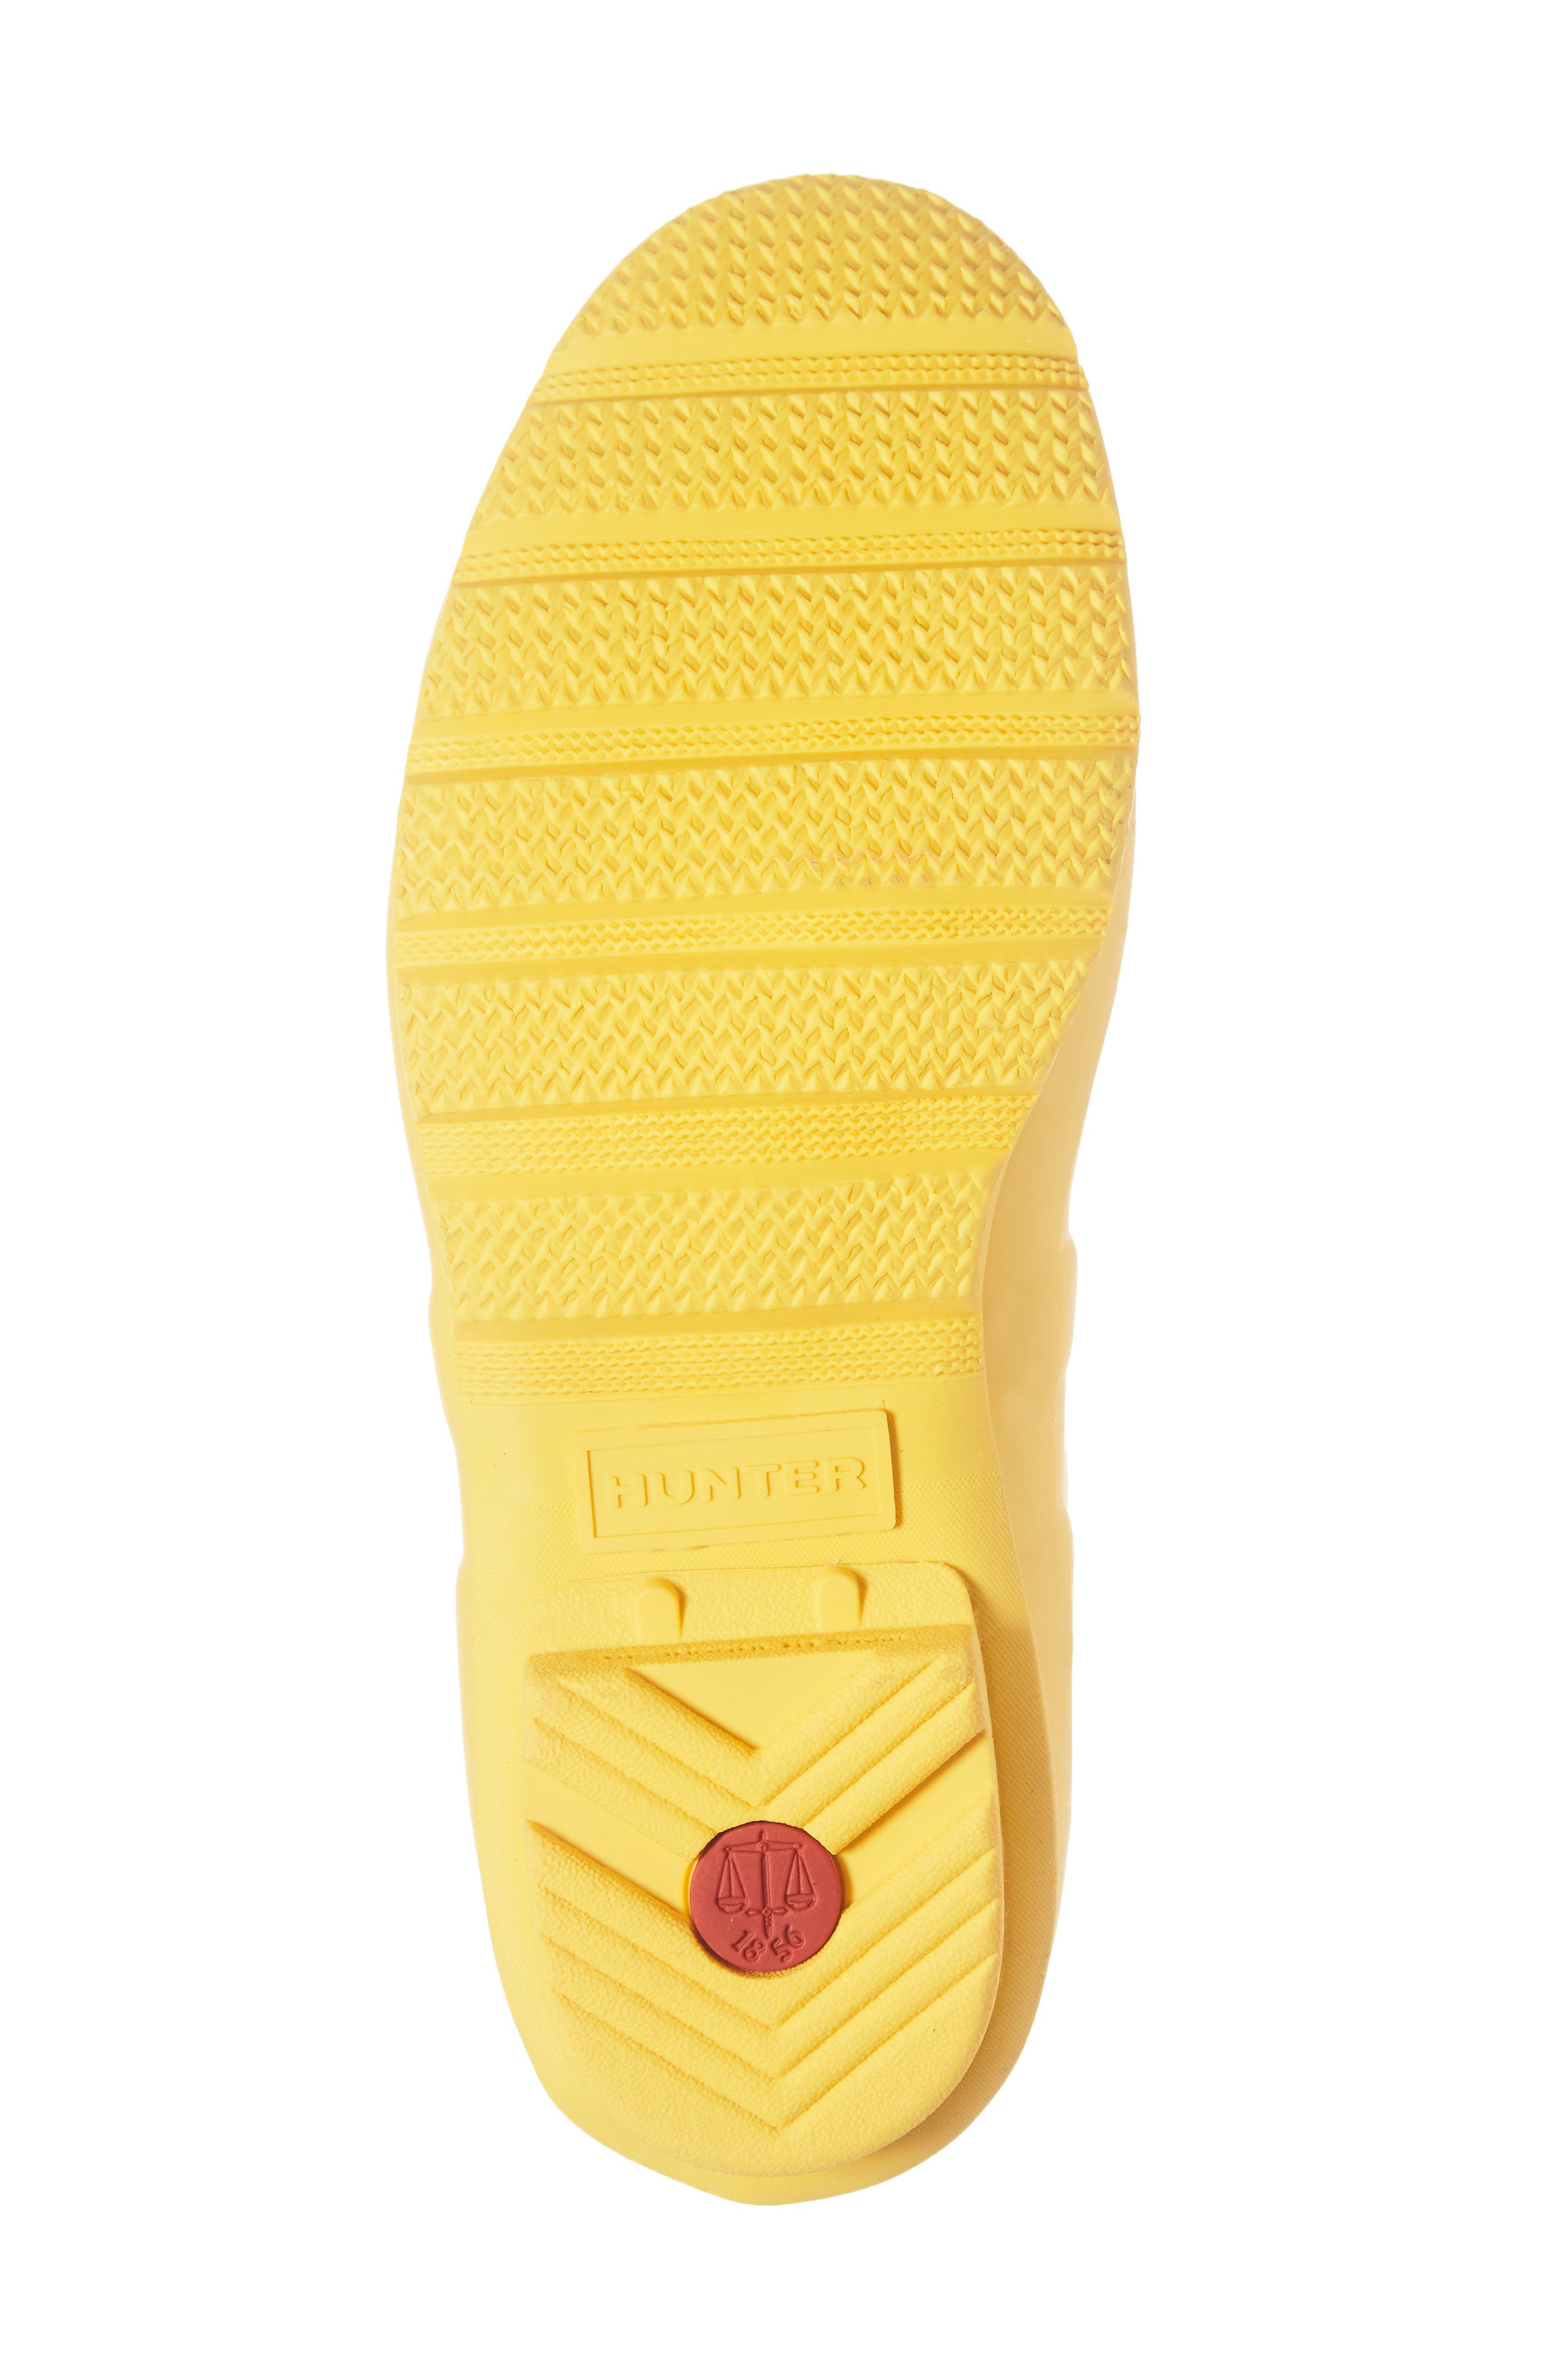 Original Short Back Adjustable Rain Boot,                             Alternate thumbnail 6, color,                             YELLOW